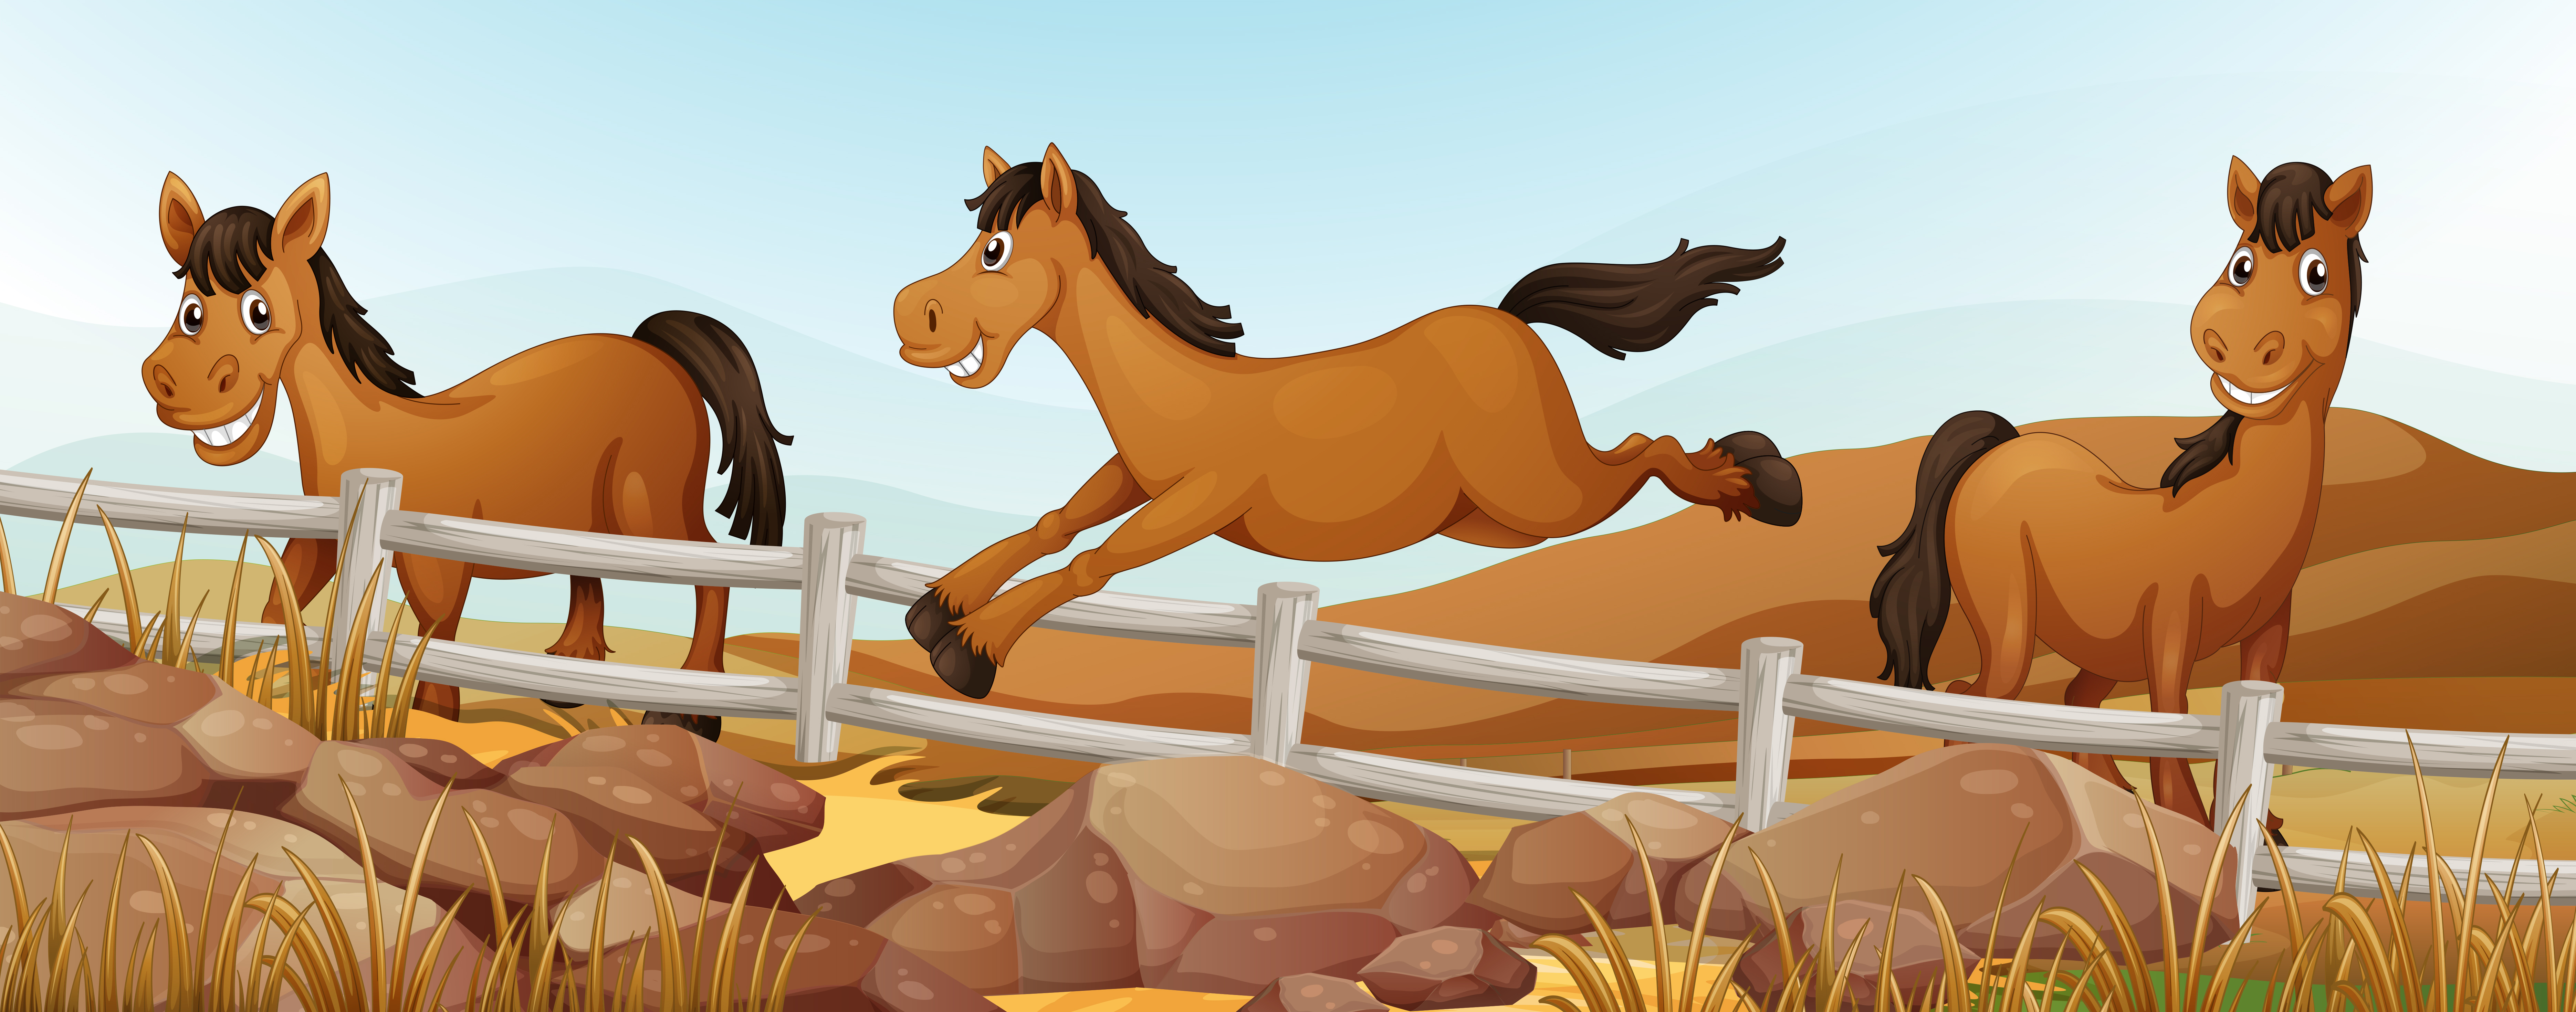 Three Horses In The Field Download Free Vectors Clipart